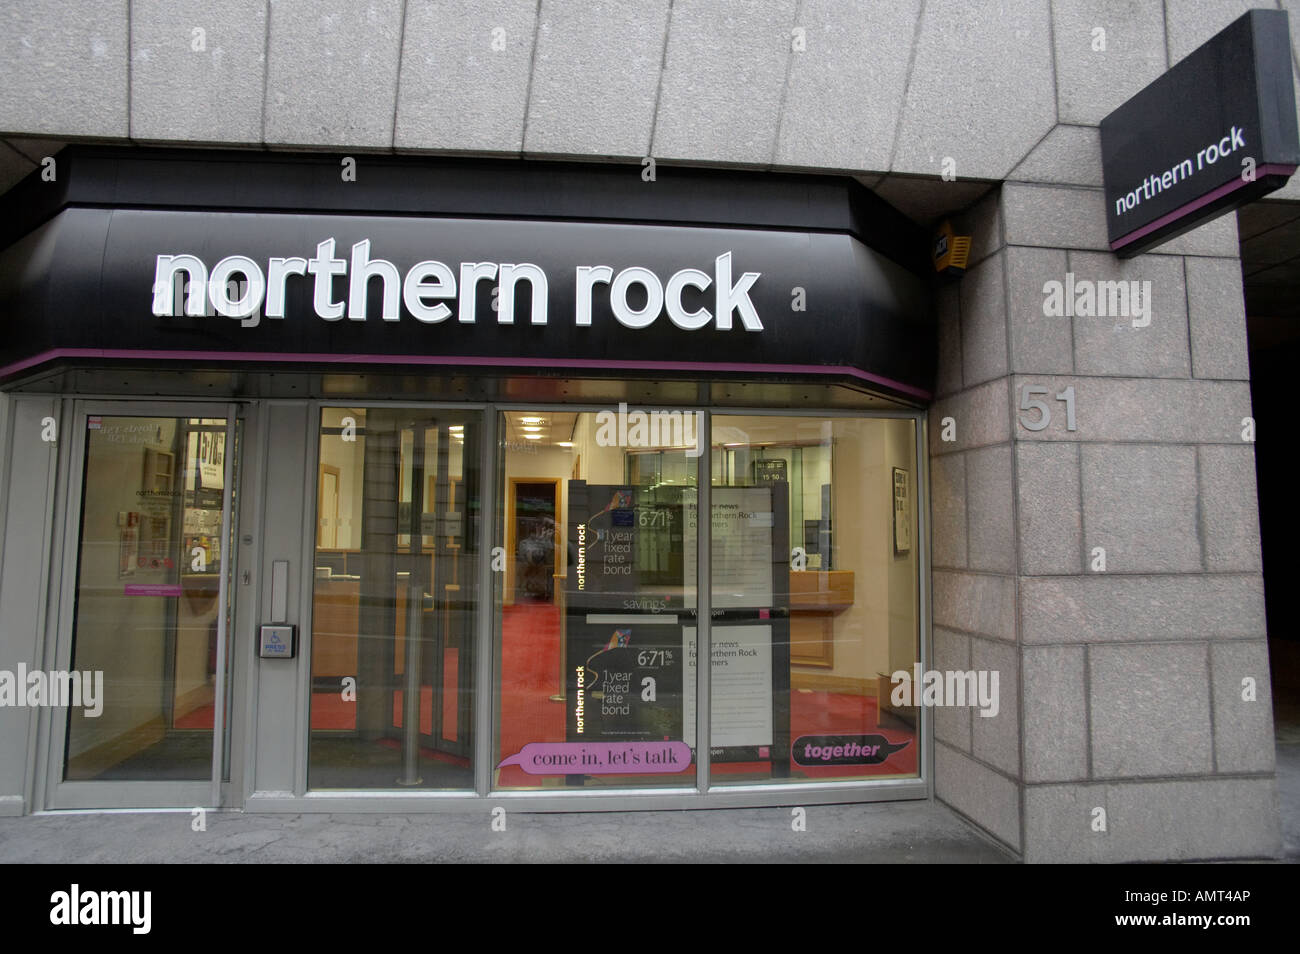 a branch of the troubled Northern Rock bank in London England UK Stock Photo